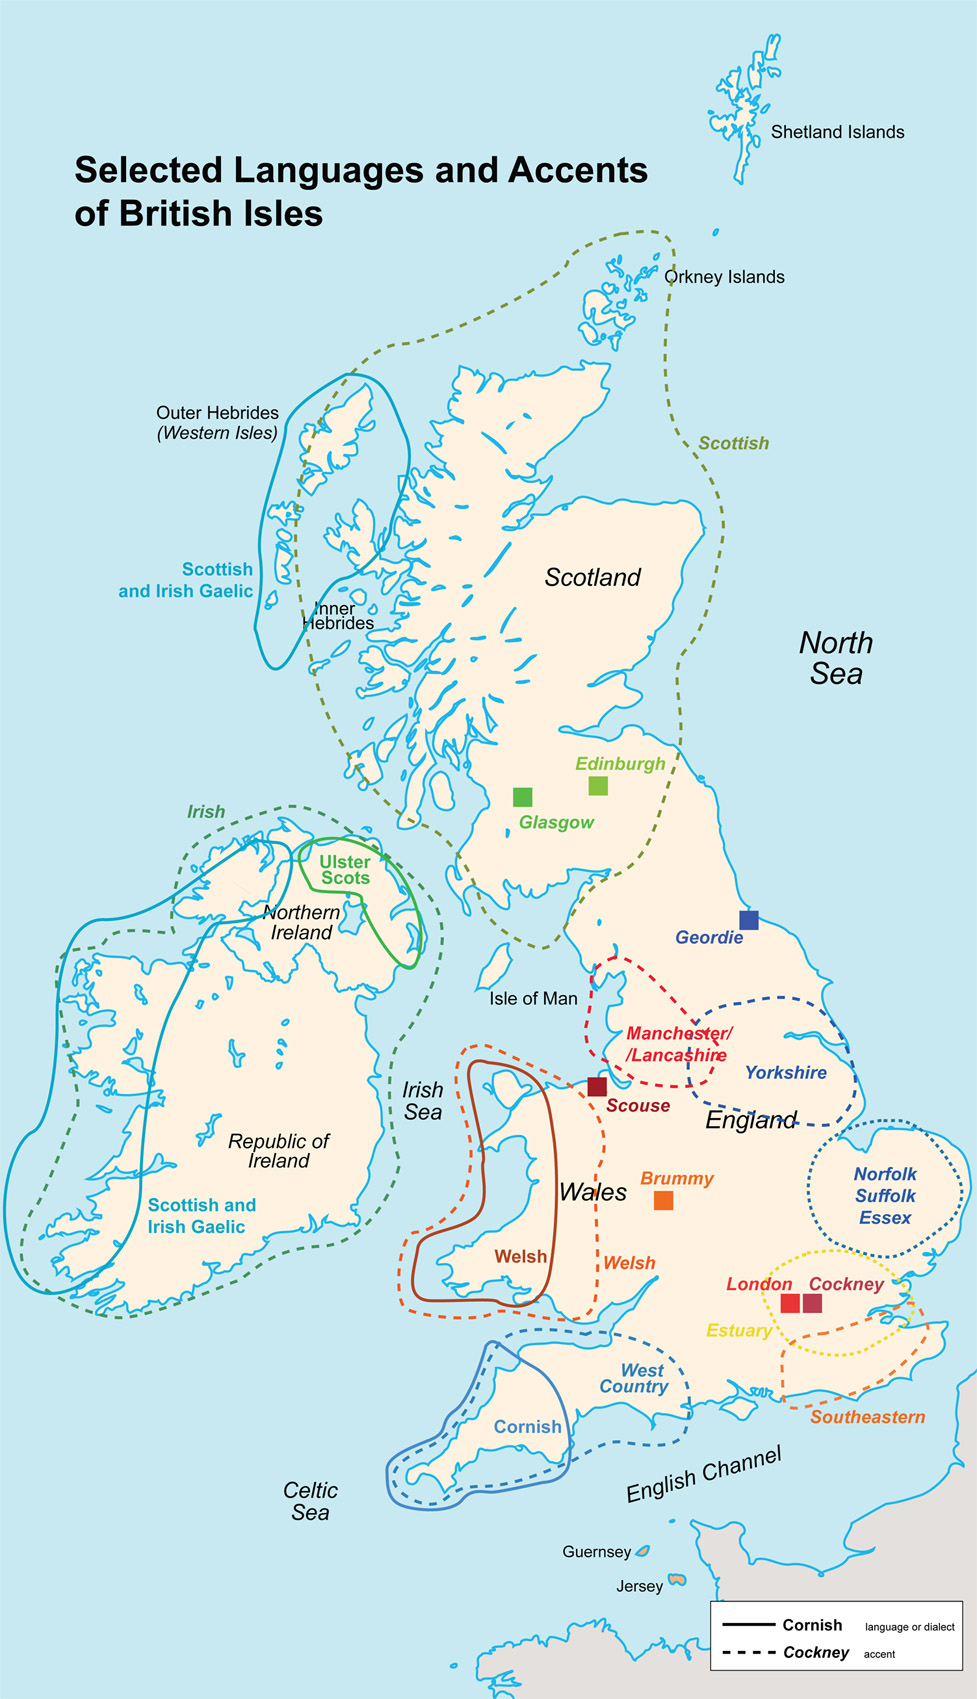 FileSelected languages and accents of the british isles2 rjljpg